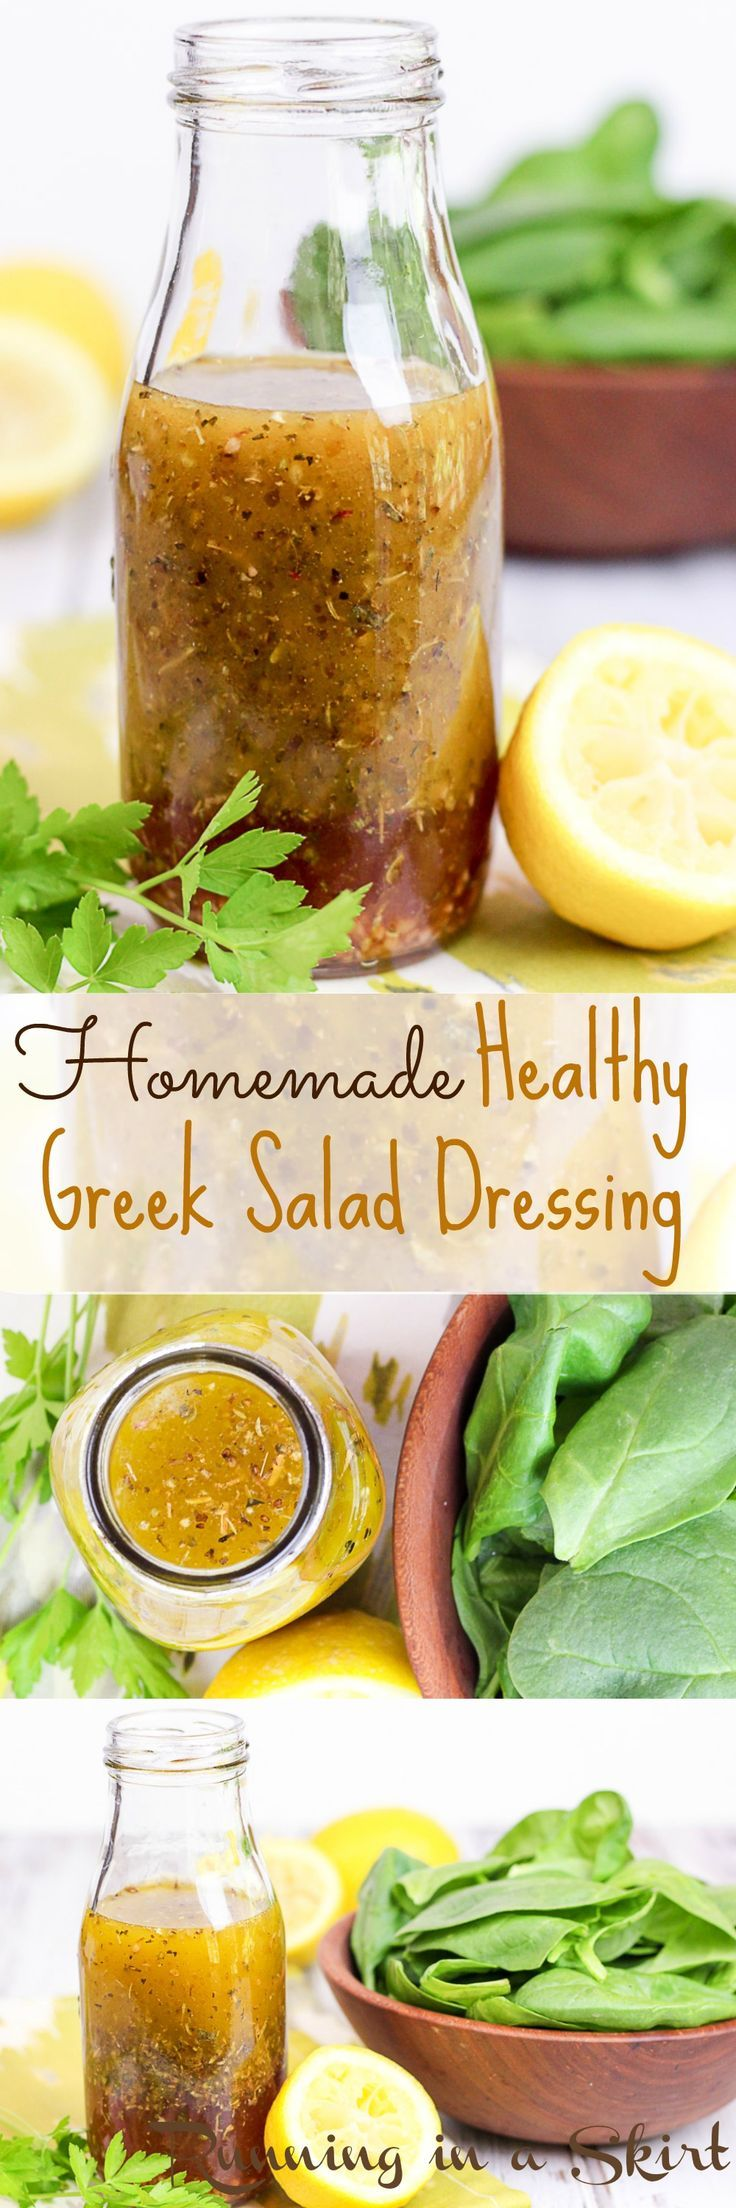 Homemade Healthy Greek Salad Dressing recipes.  DIY with only 7 ingredients…